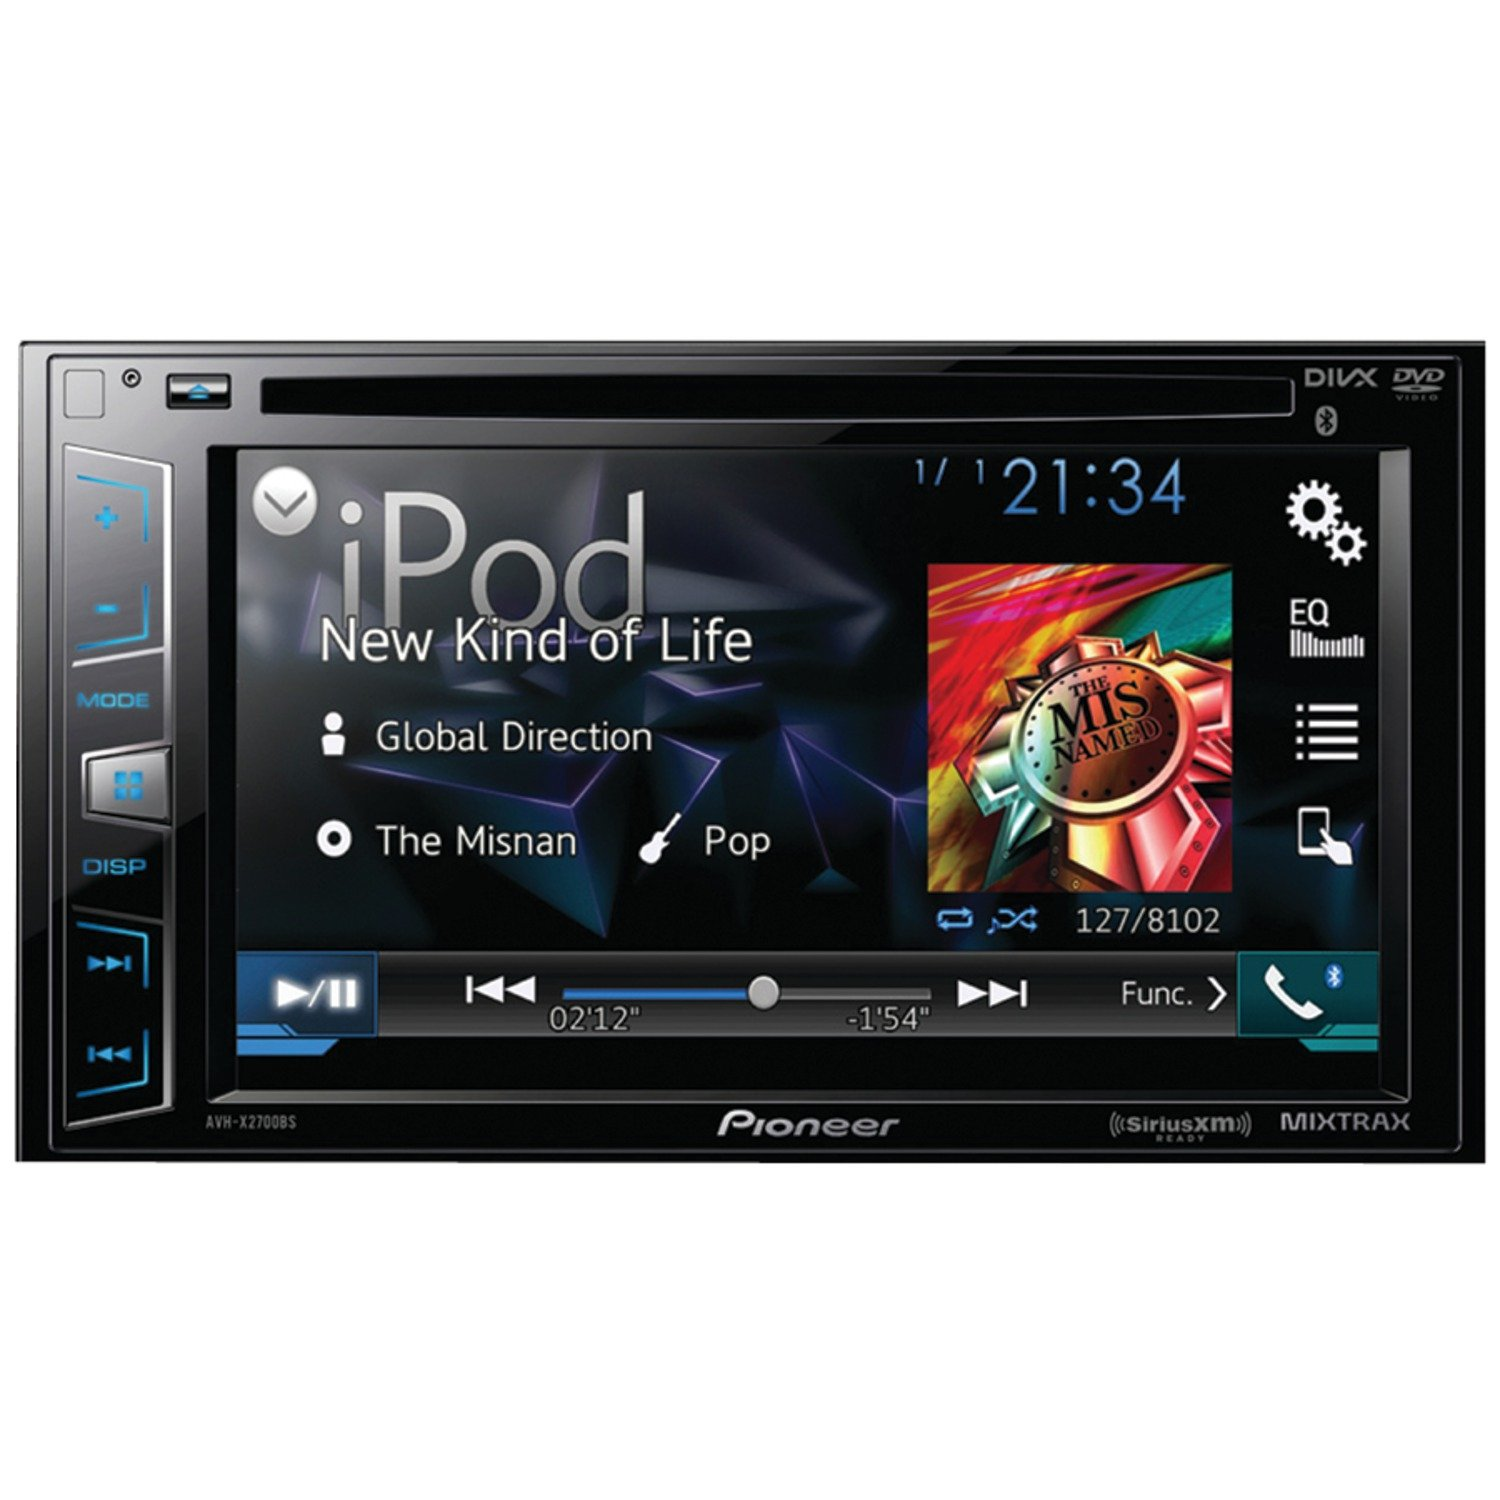 71IQPcOY7RL._SL1500_ amazon com pioneer avhx2700bs double din bluetooth sirius dvd  at soozxer.org